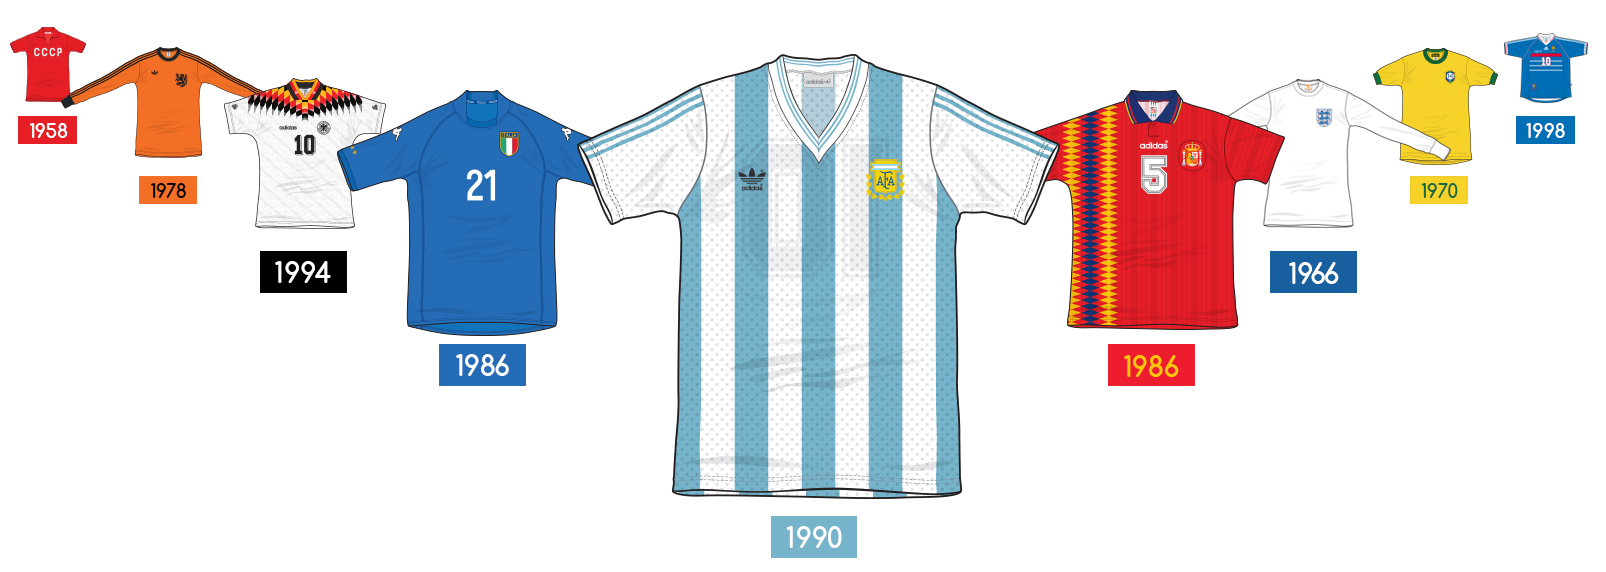 The Most Unforgettable Uniforms in the History of the World Cup